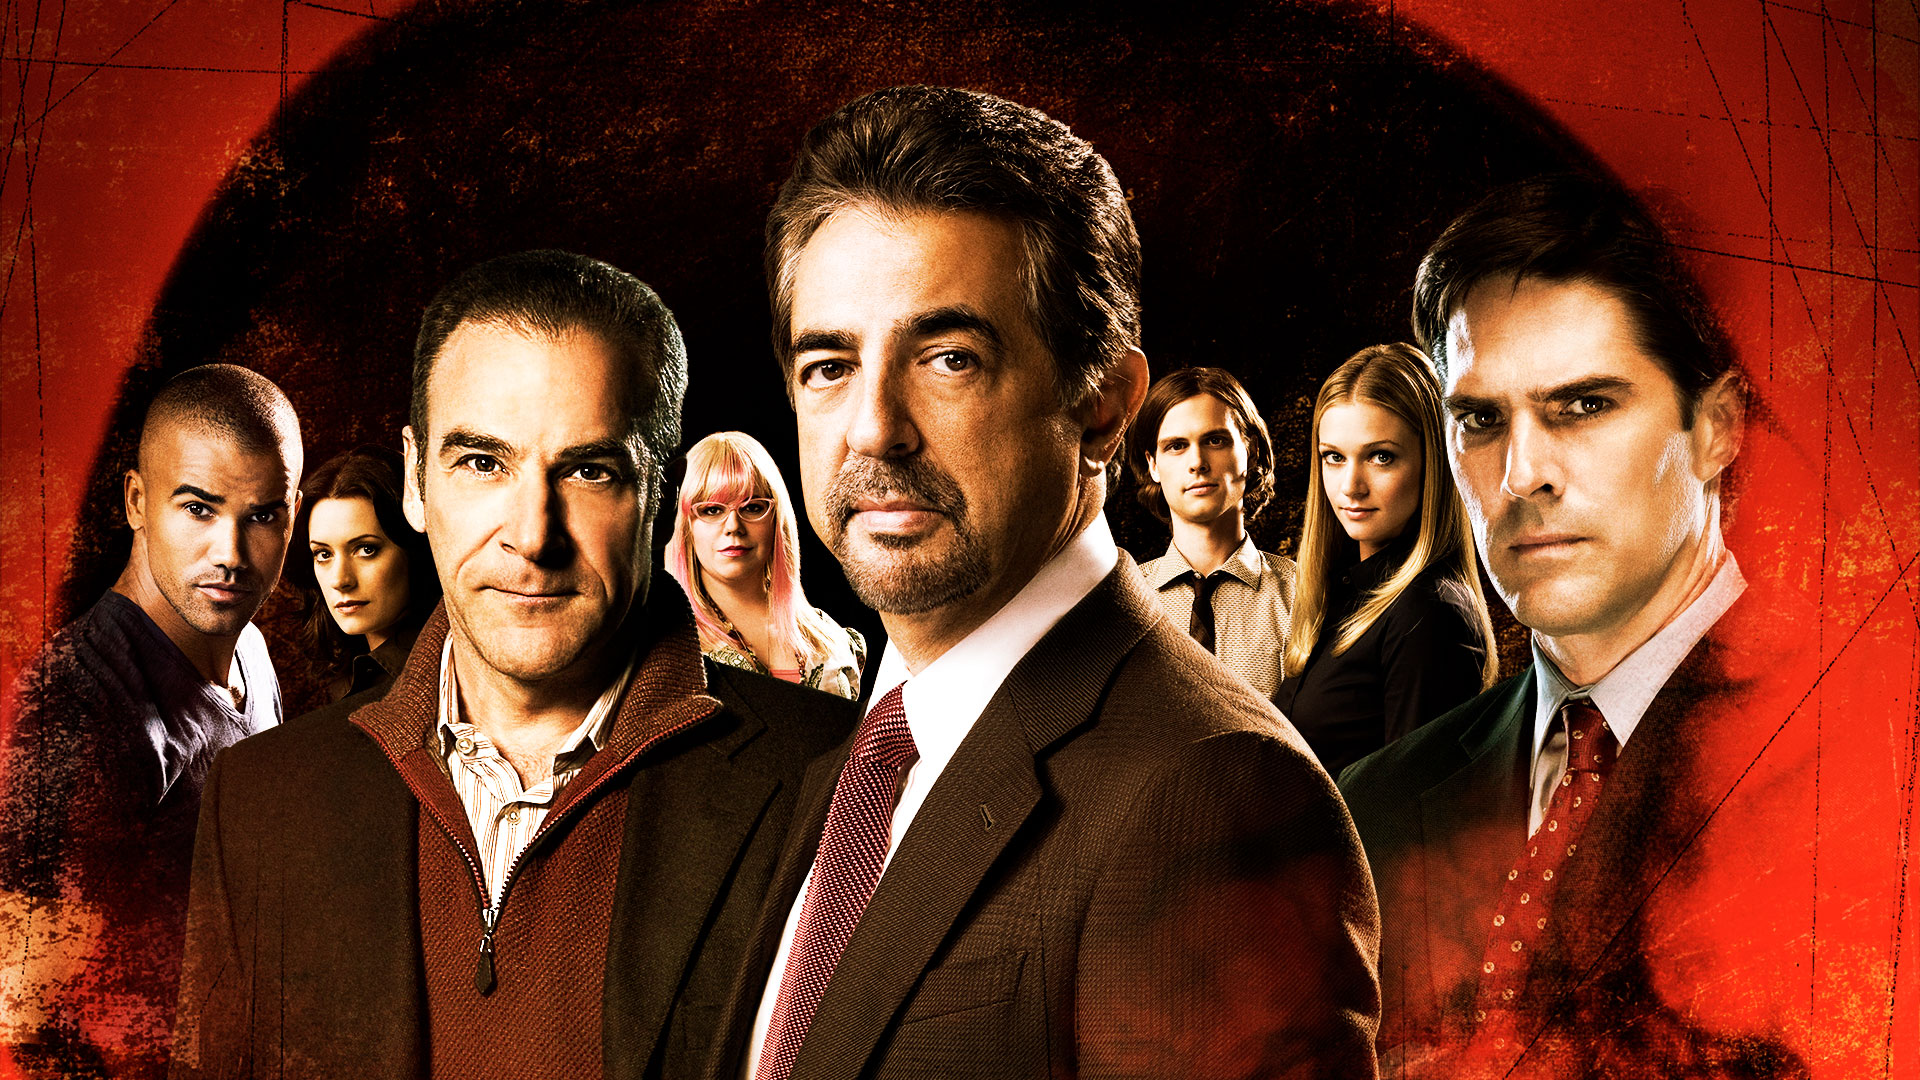 Criminal Minds Wallpapers, Pictures, Images